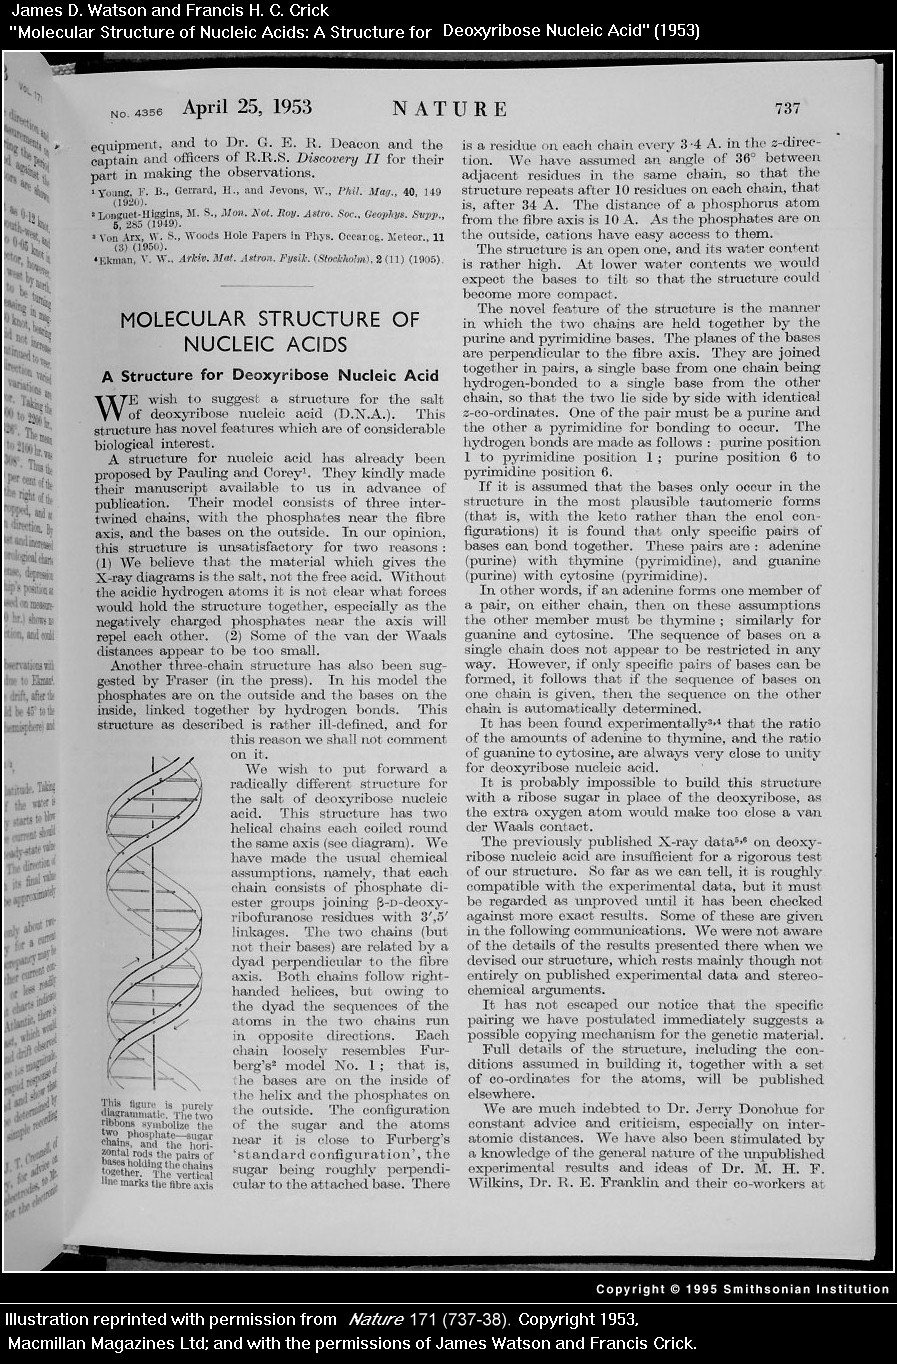 biography of francis crick essay In september 1957, francis crick gave a lecture in which he outlined key ideas about gene function, in particular what he called the central dogma these ideas still frame how we understand life this essay explores the concepts he developed in this influential lecture, including his prediction.